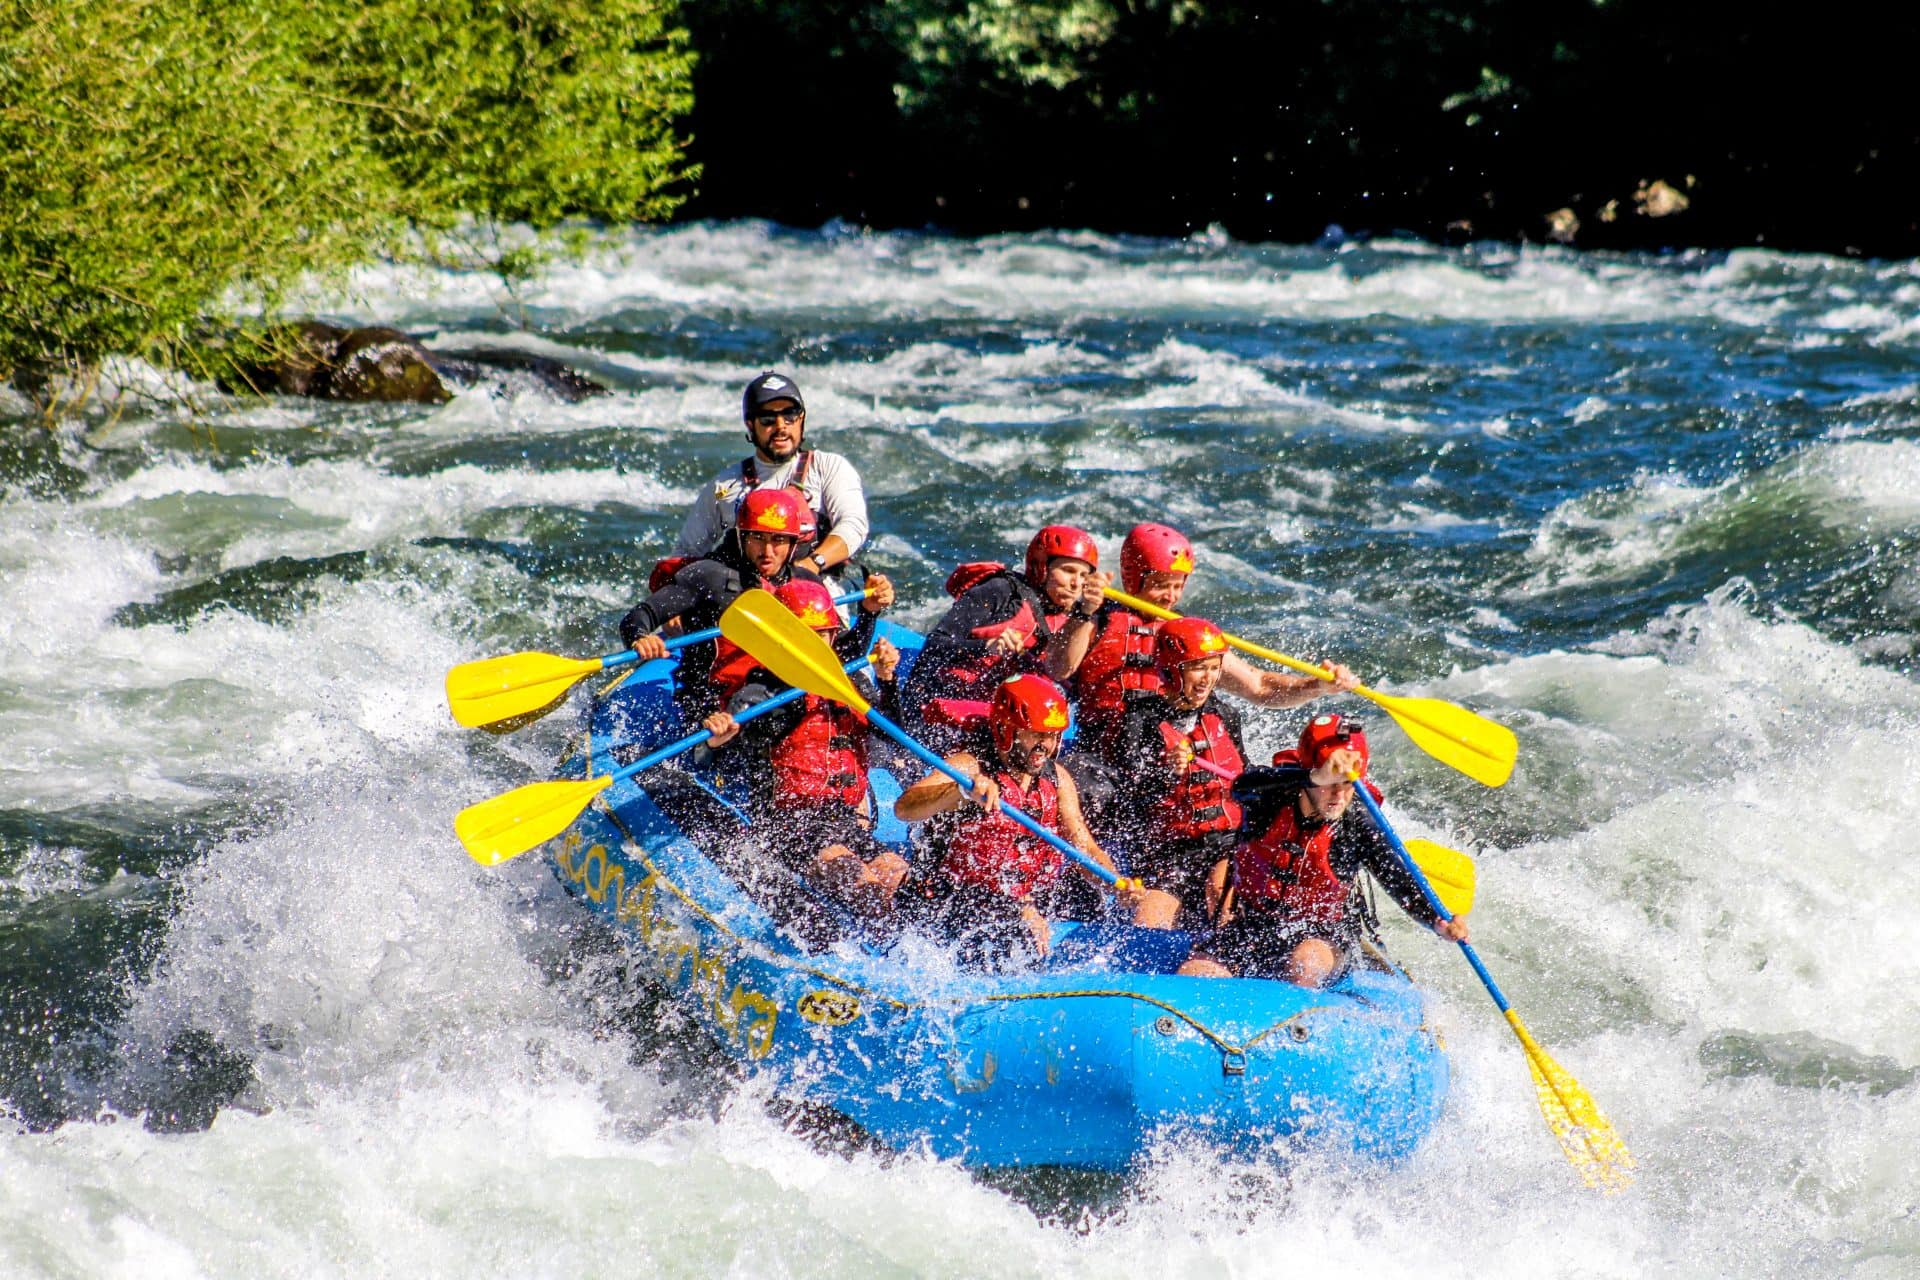 Rafting in the Trancura river, Pucon, Chile - Experiencing the Globe